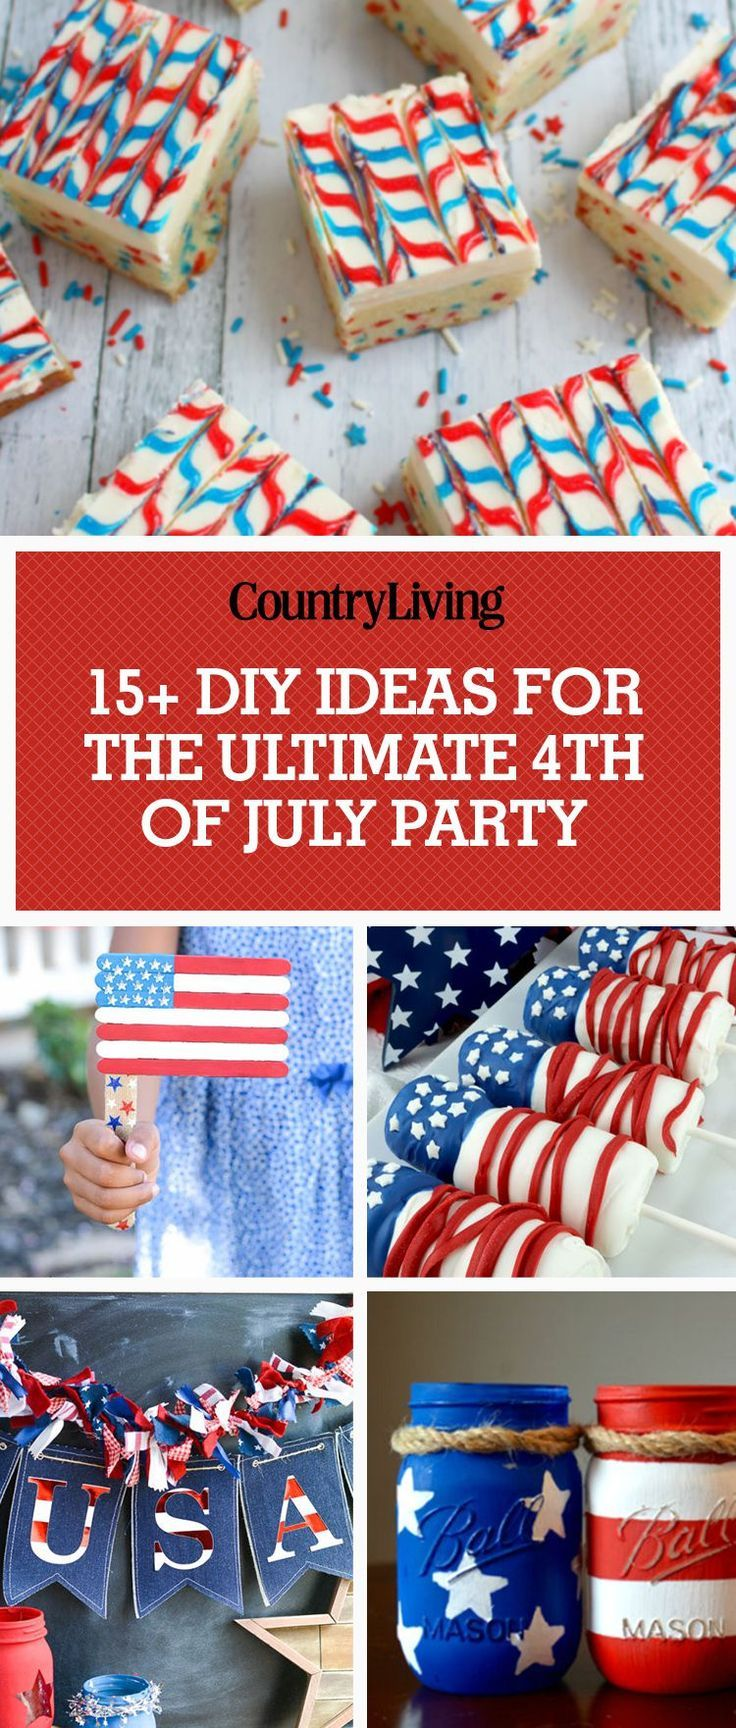 Tons Of Festive Diy Ideas For Your 4th Of July Party 4th Of July Party July Party Party Food Ideas For Adults Entertaining